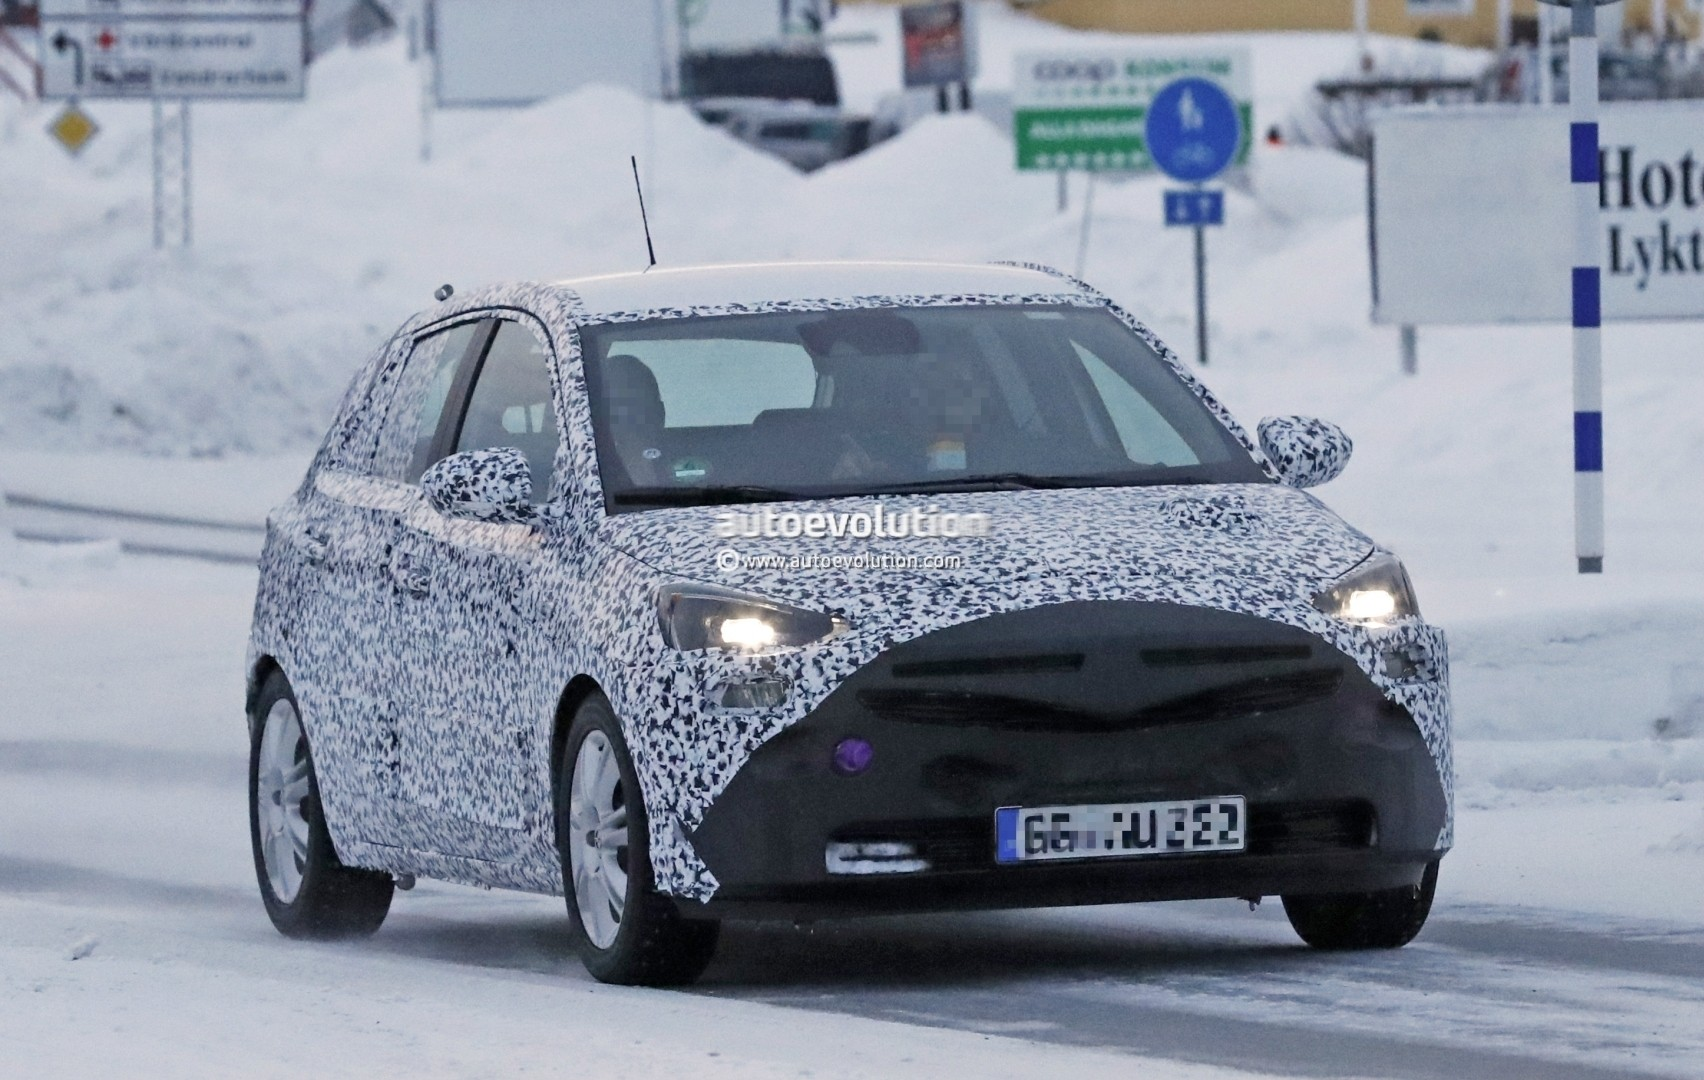 new 2019 opel corsa shows production headlights in latest spyshots autoevolution. Black Bedroom Furniture Sets. Home Design Ideas